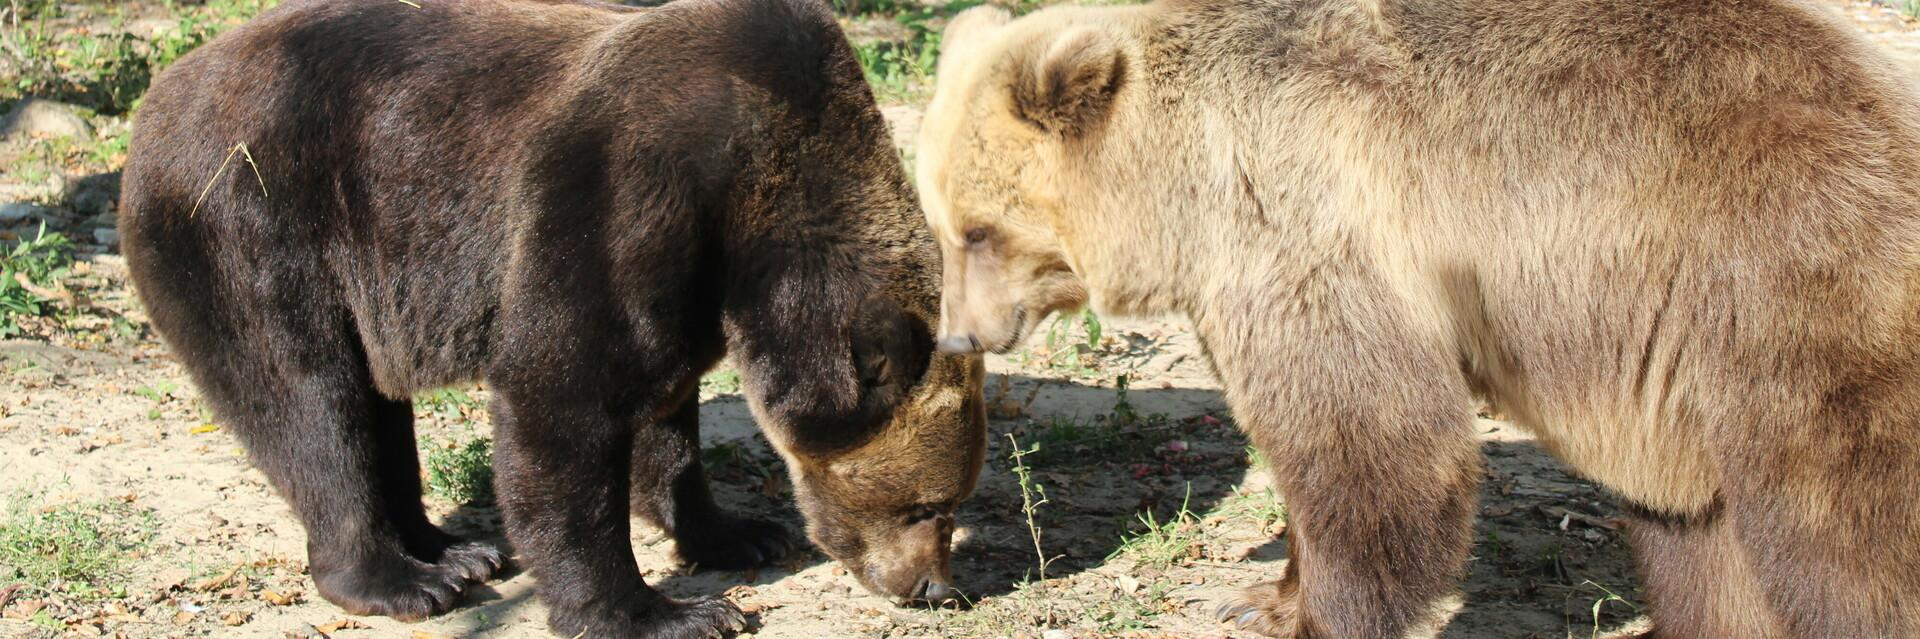 Bears Leo and Melanka